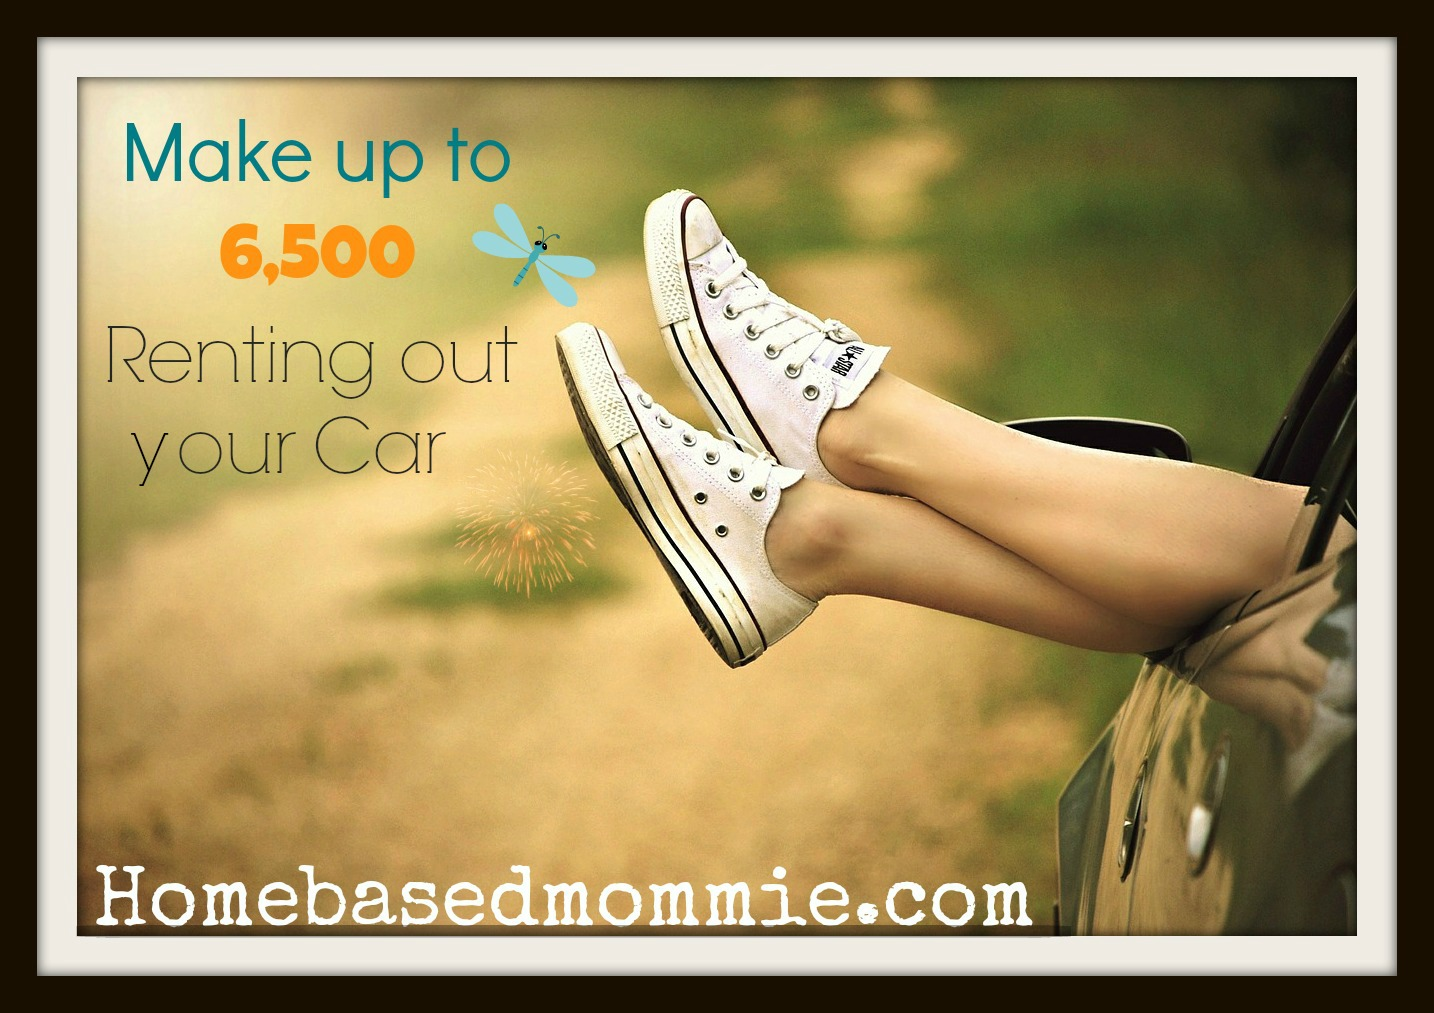 Make up to $6,500 Renting out your Car